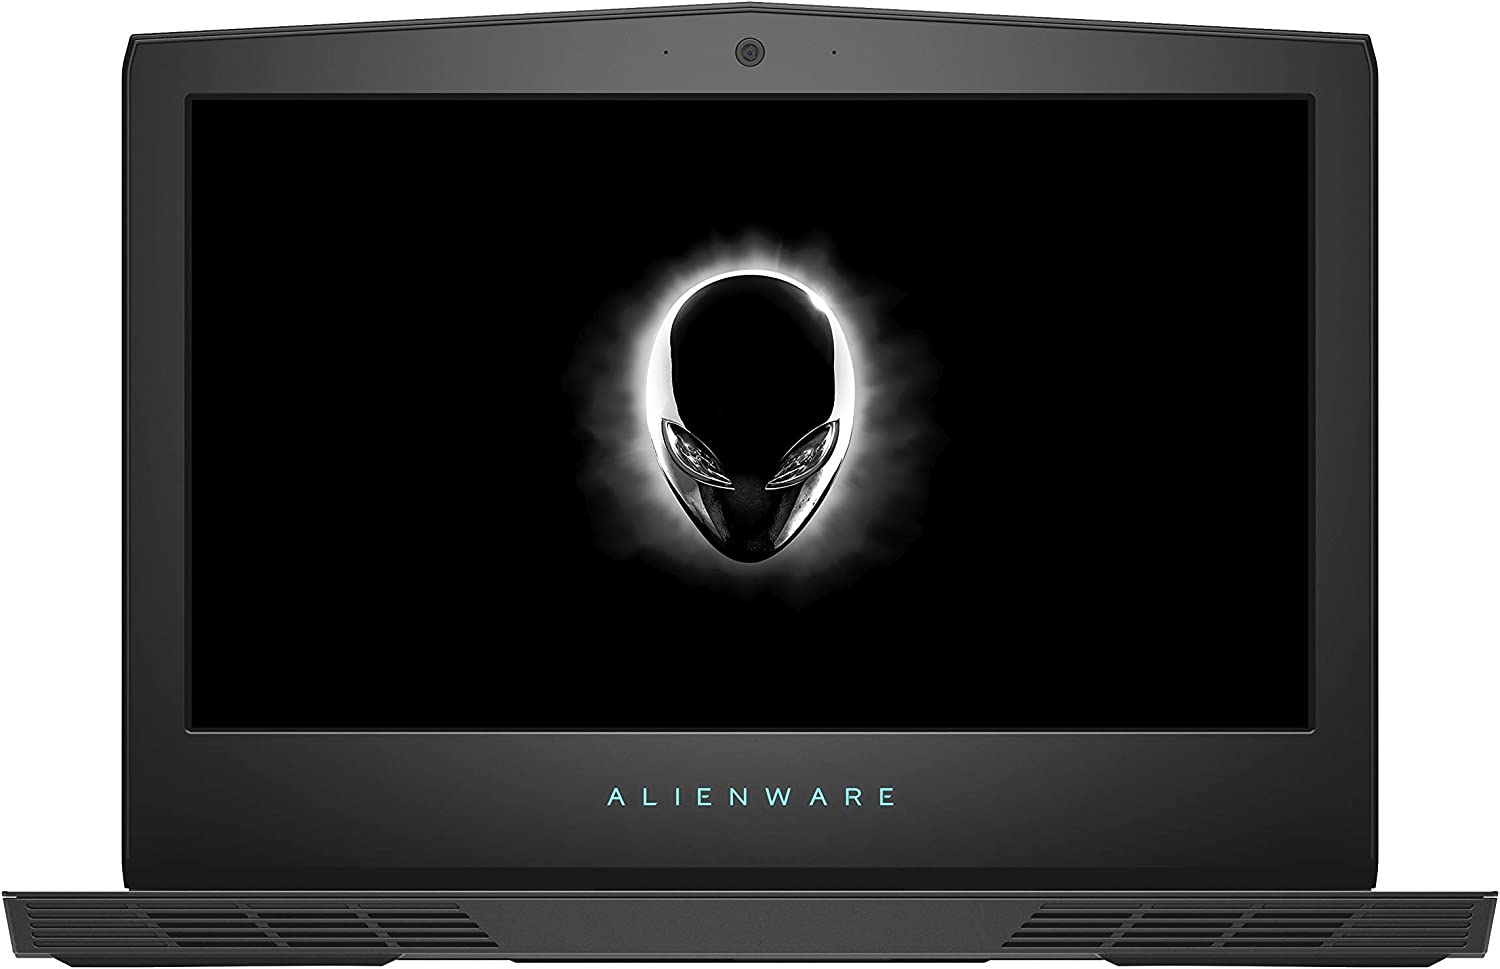 "Alienware 15 R4 AW15R4-7712SLV-PUS 15.6"" Full HD Gaming Laptop (8th Generation Intel Core i7-8750H, 16GB DDR4 RAM, 256GB SSD/1TB HDD) with NVIDIA GTX 1060"